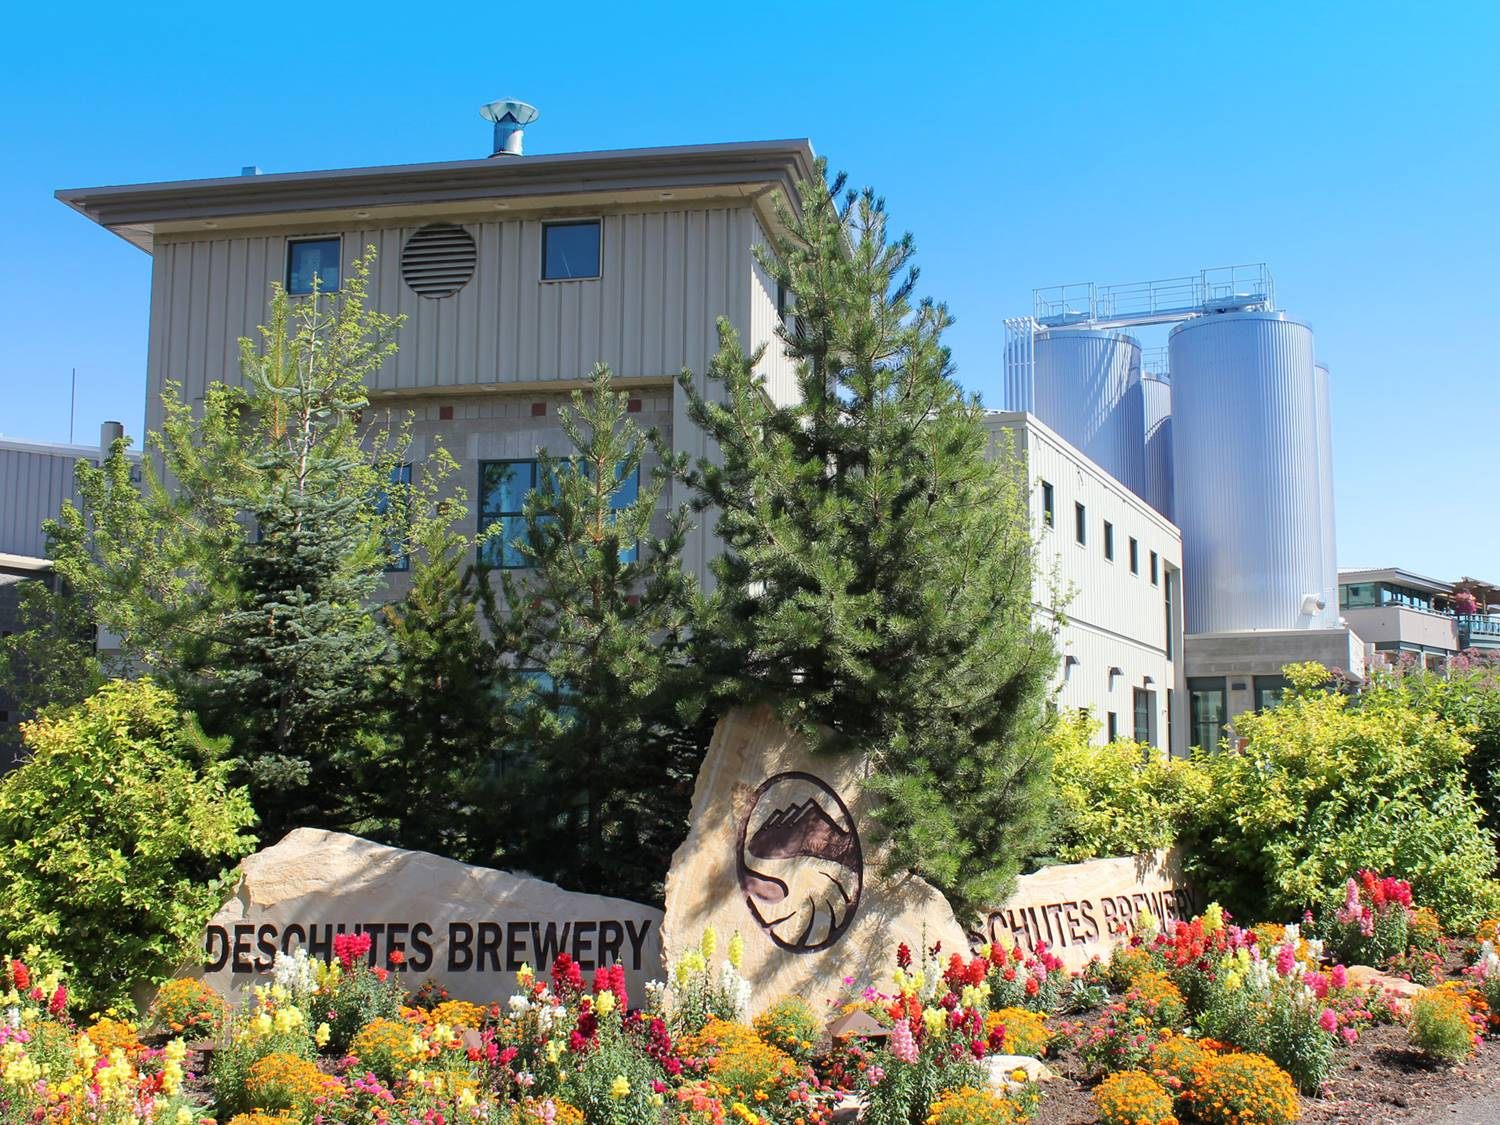 Image Credit: Deschutes Brewery-Production Facility by U.S. Department of Agriculture via Flickr (CC BY 2.0)